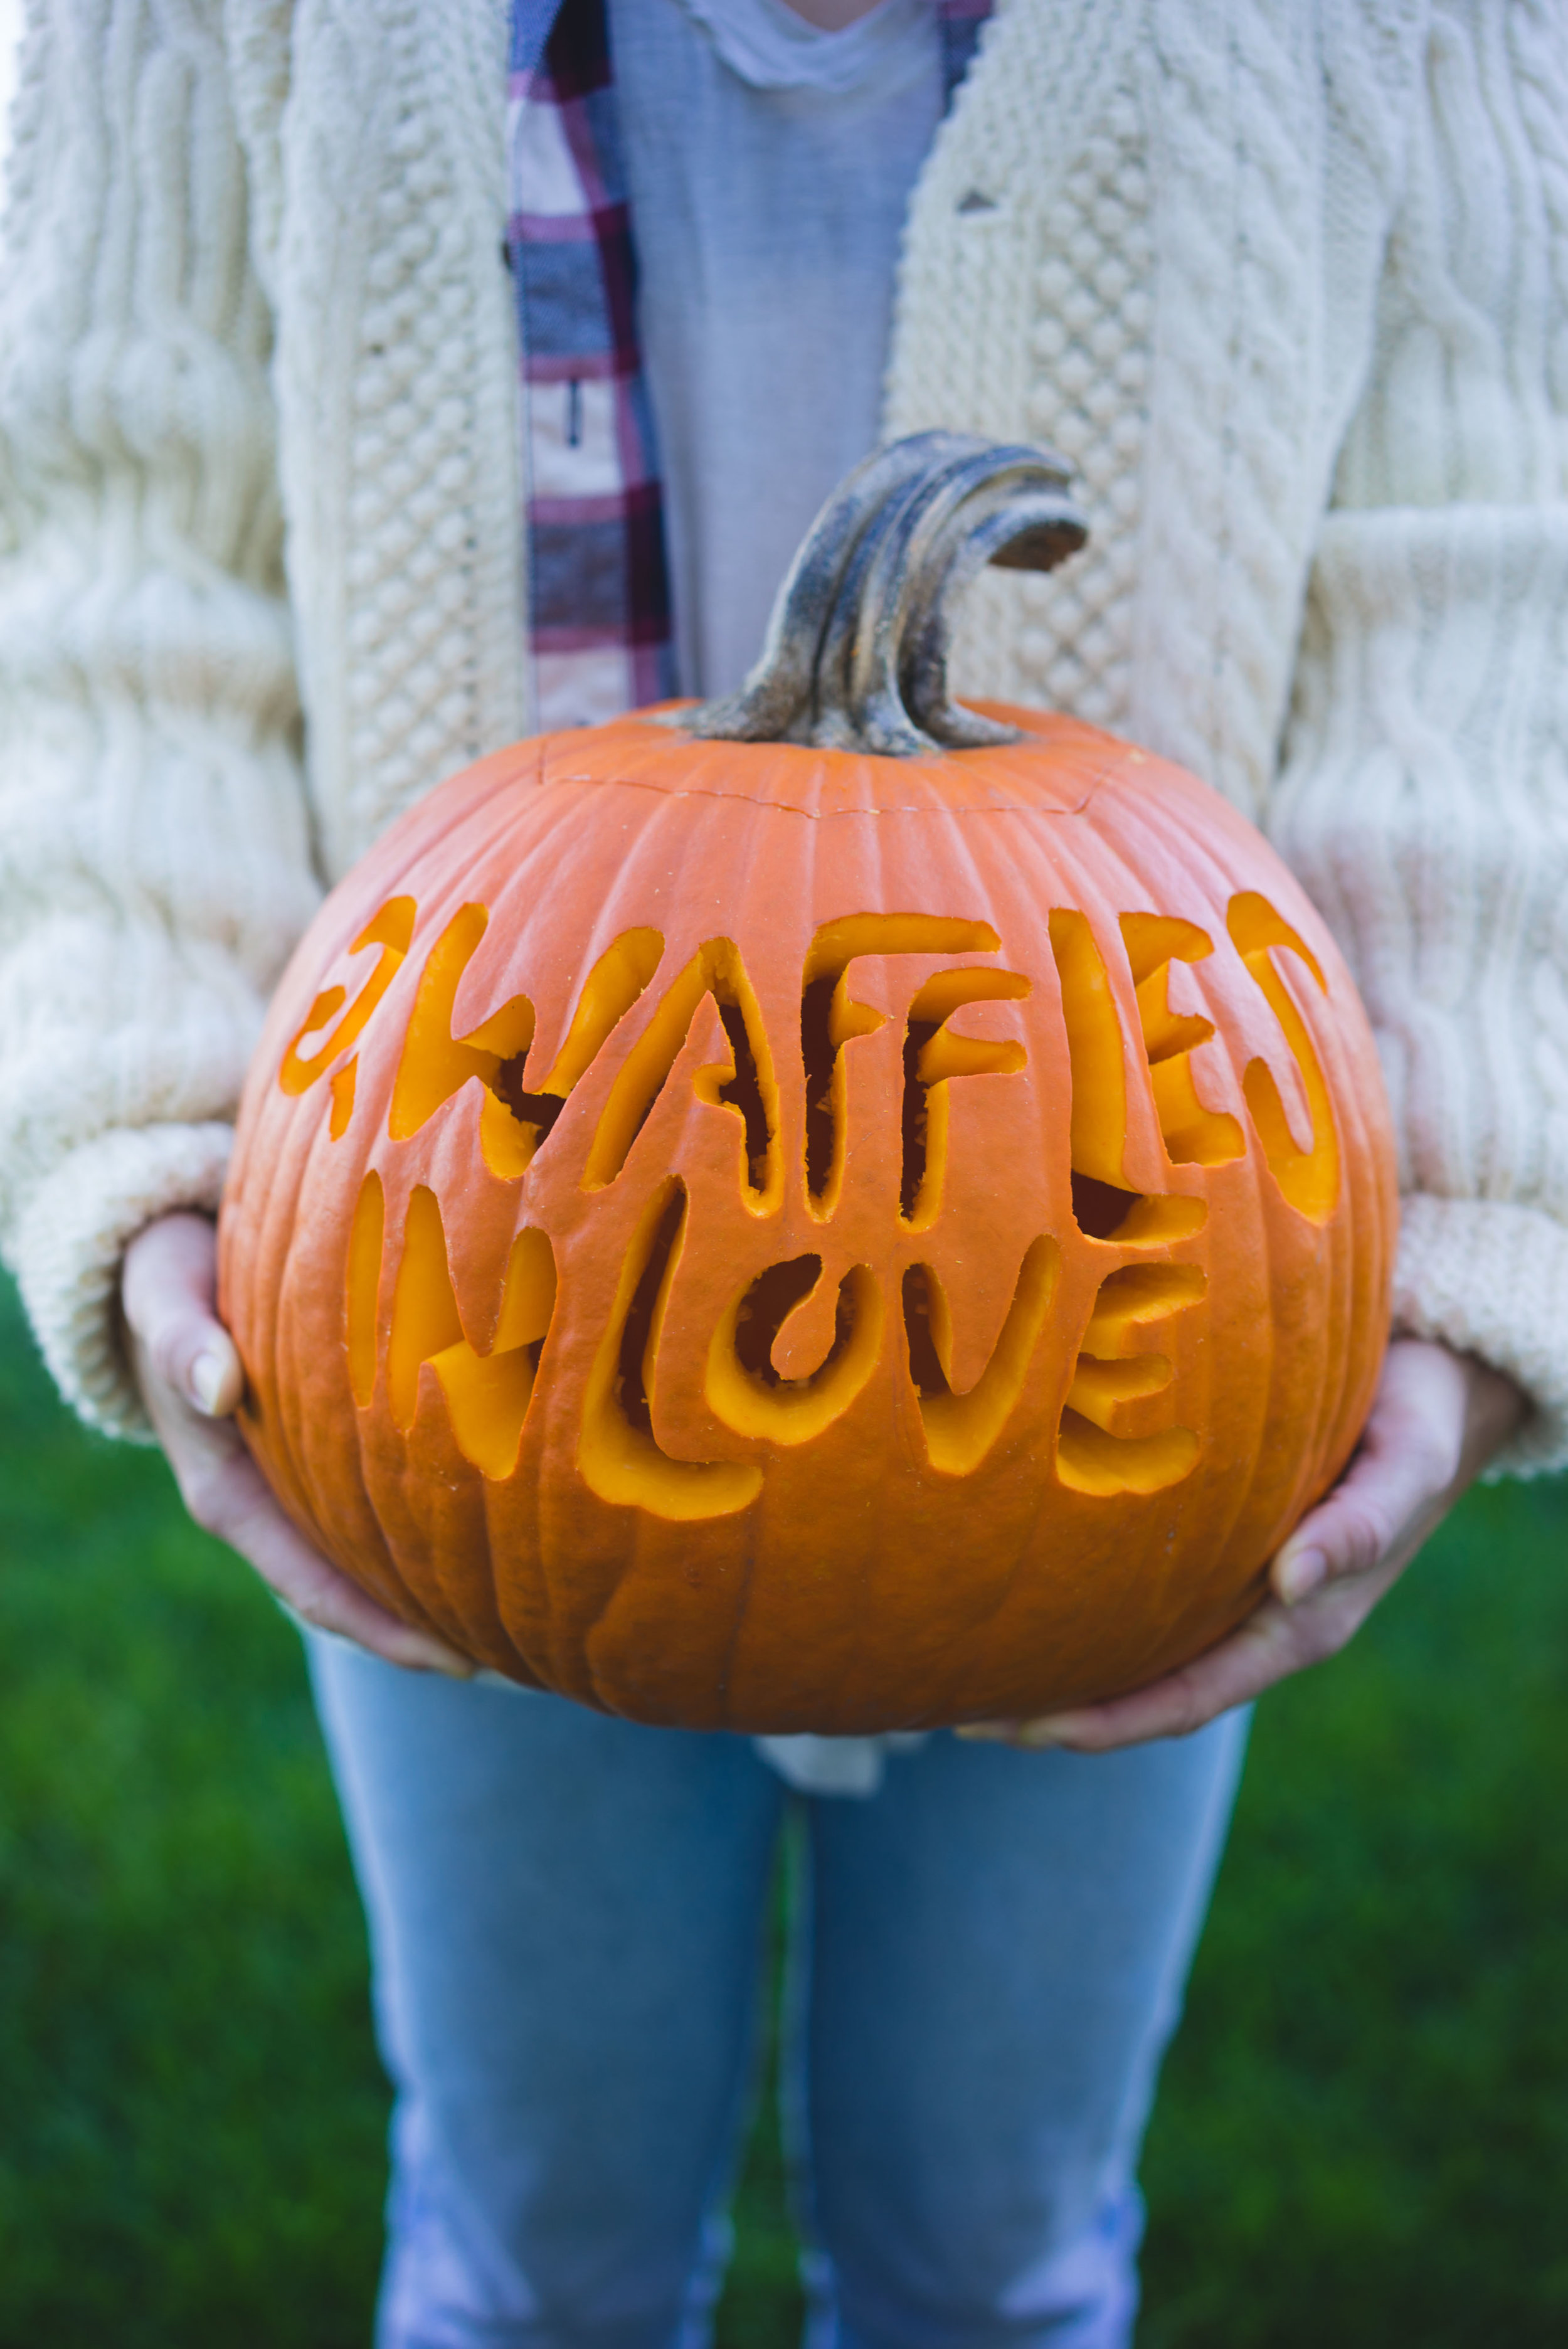 MAK carved a pumpkin for the wedding that says #2wafflesinlove